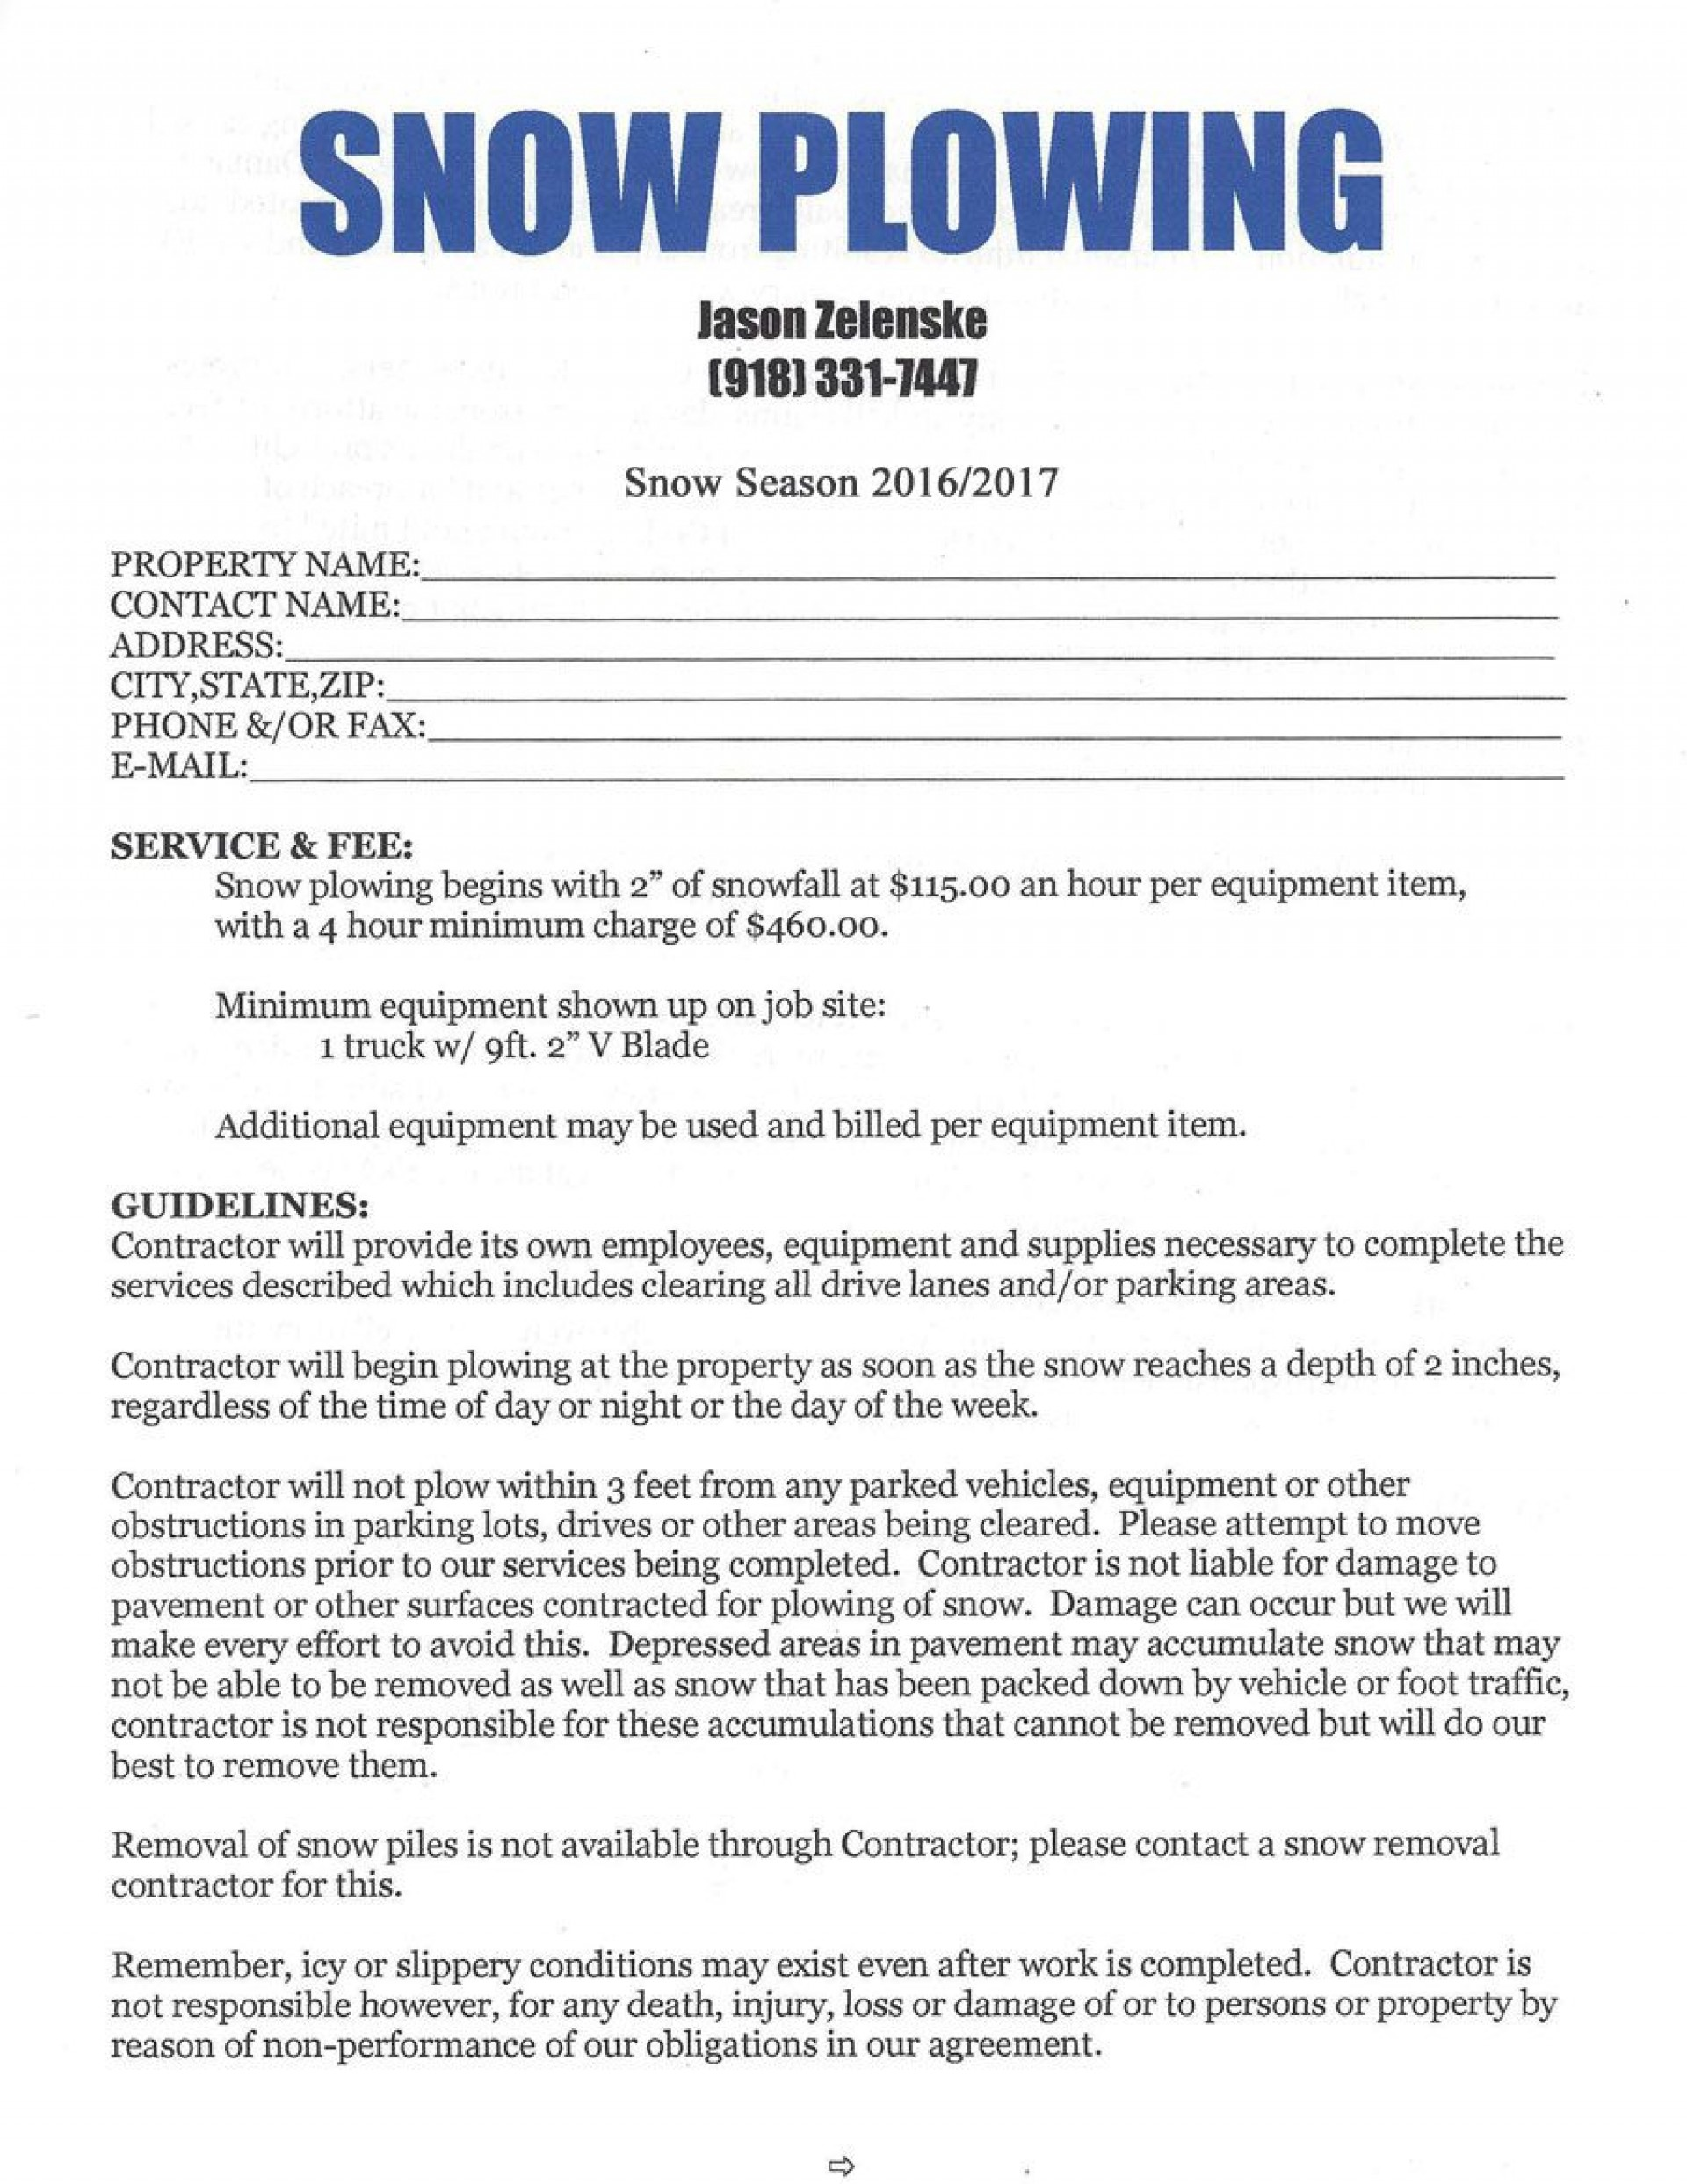 Snow Removal Contract Templates